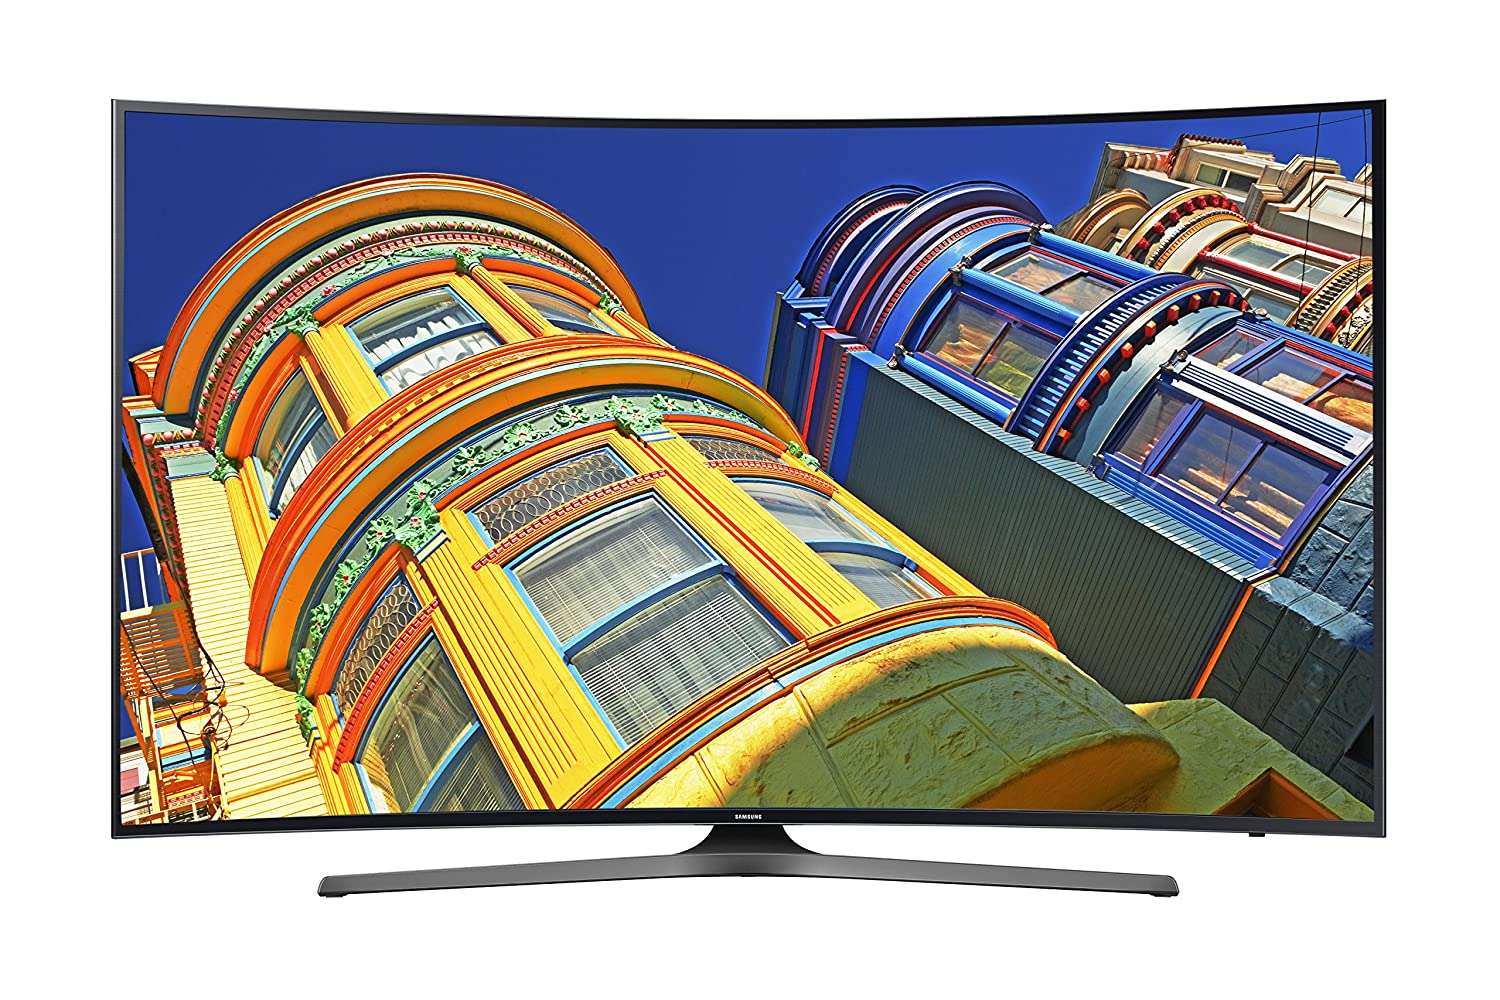 Best TVs for PS4